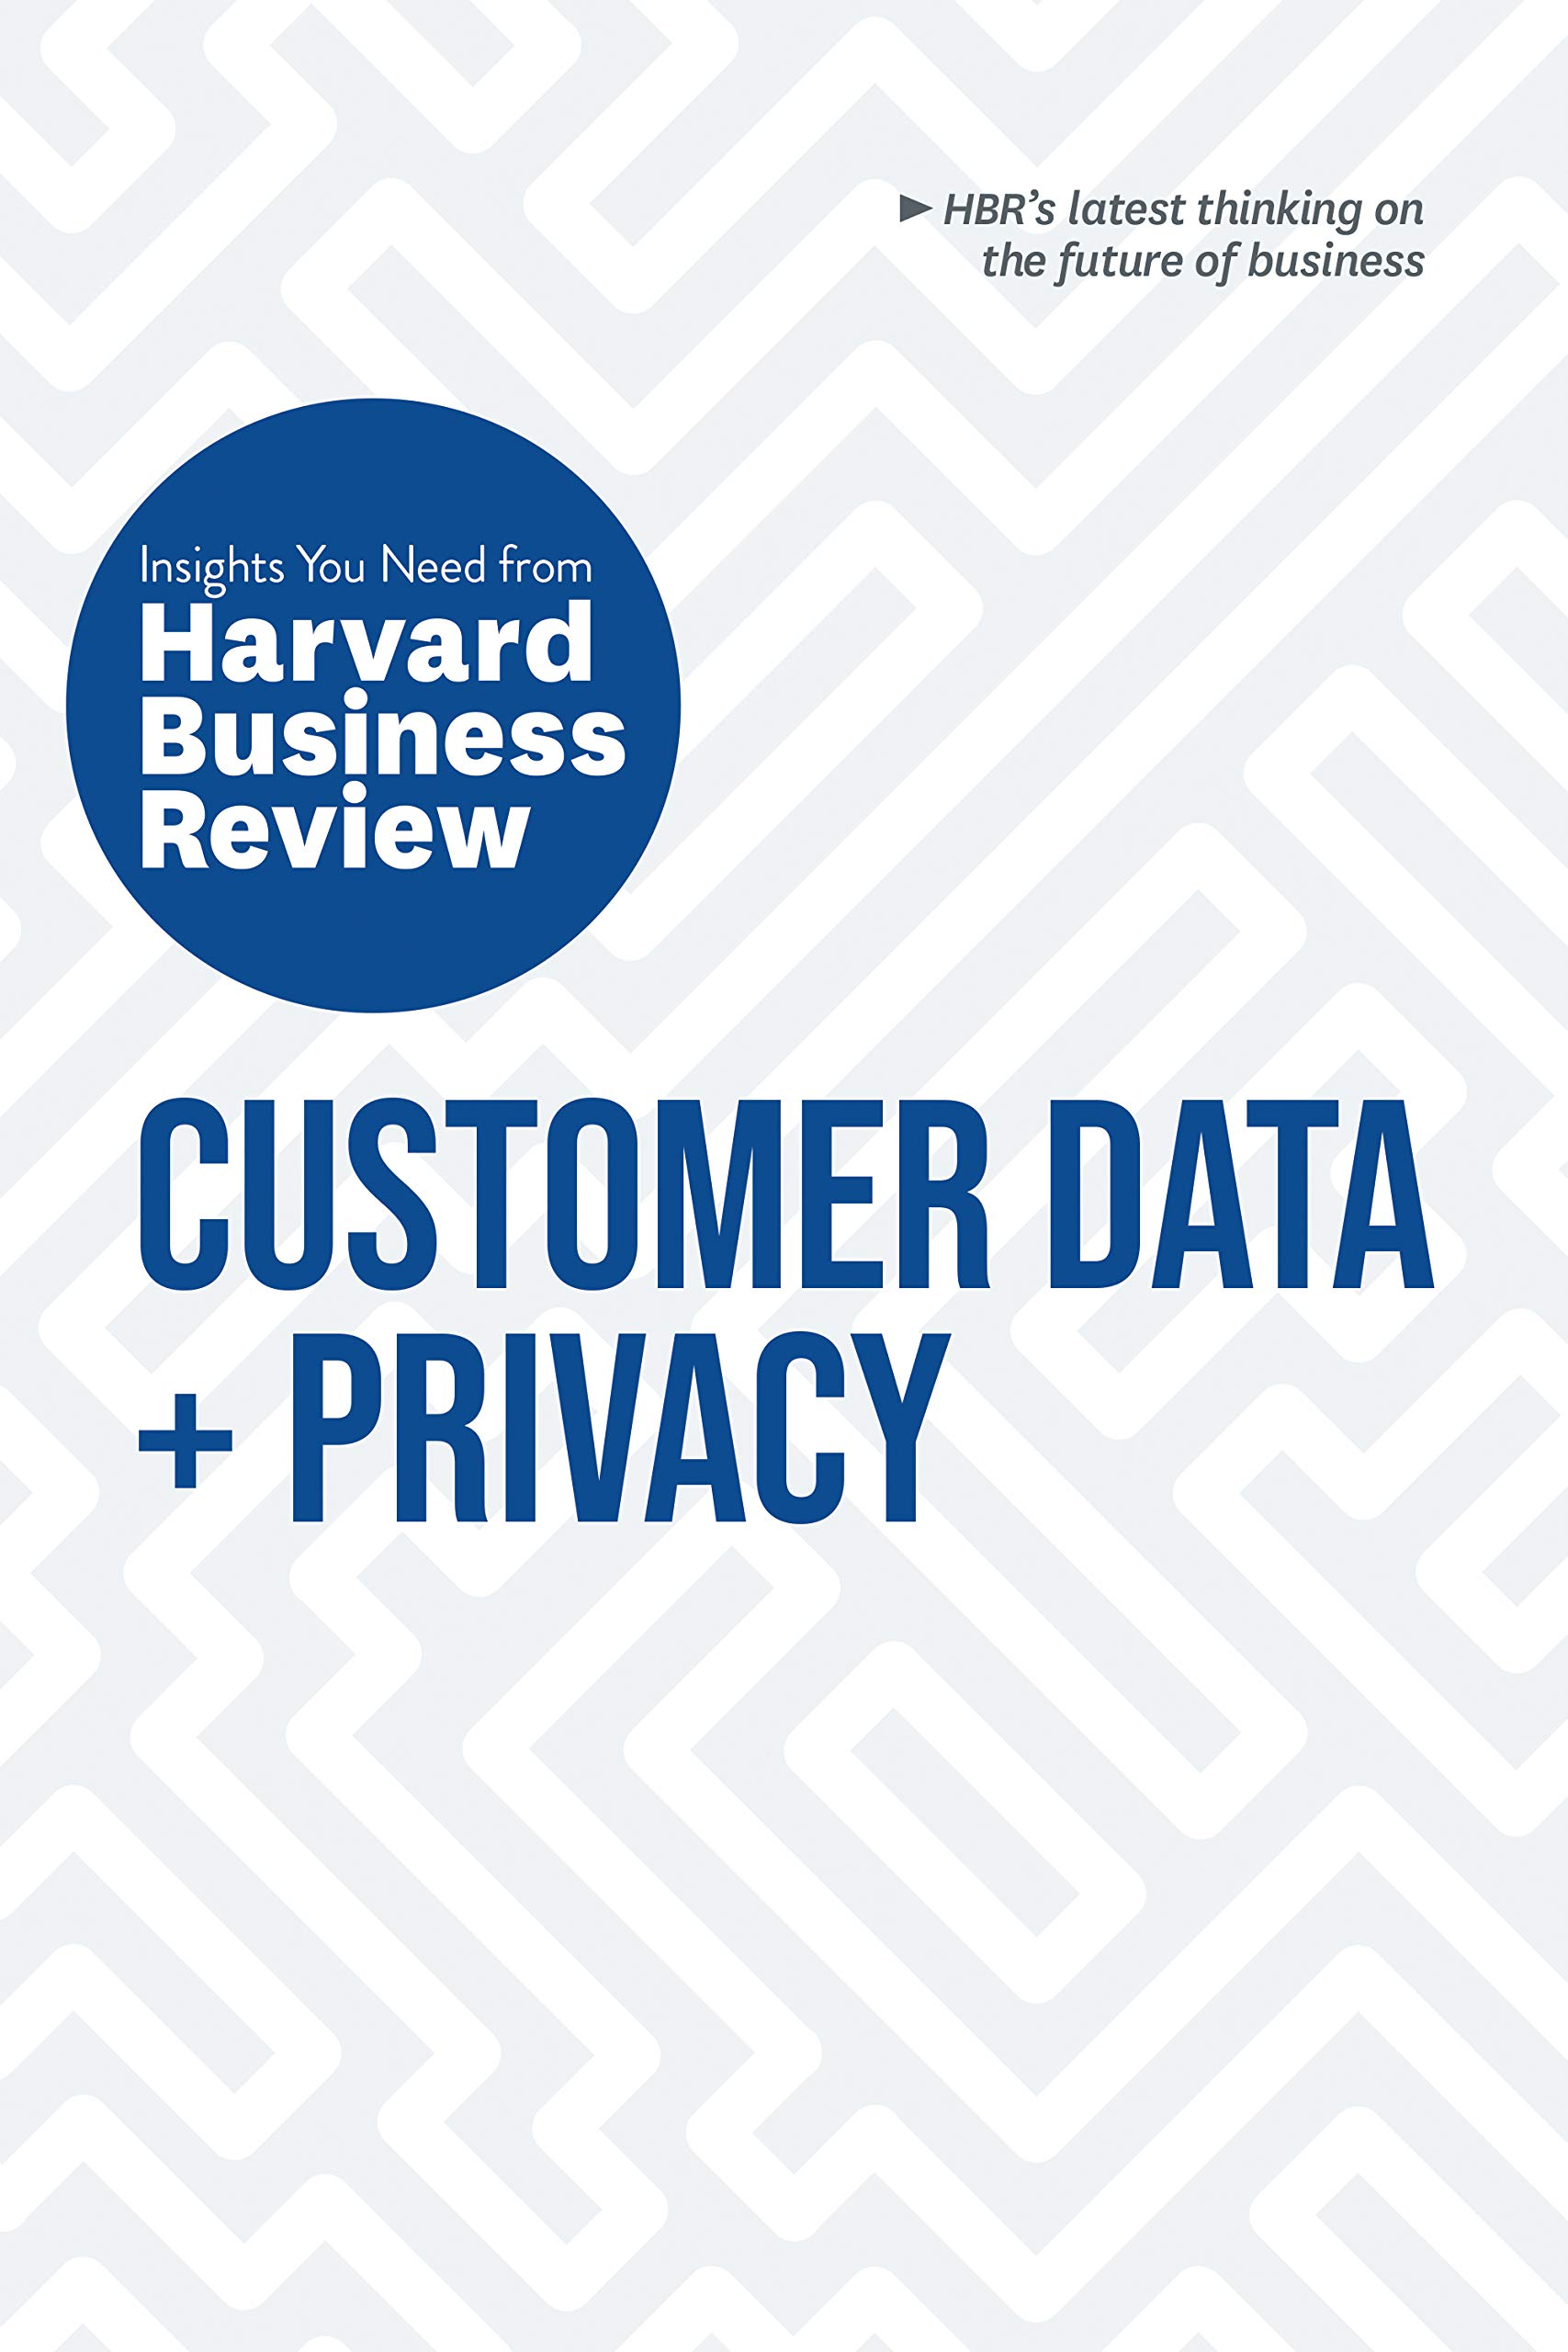 Customer Data and Privacy: The Insights You Need from Harvard Business Review (HBR Insights Series)